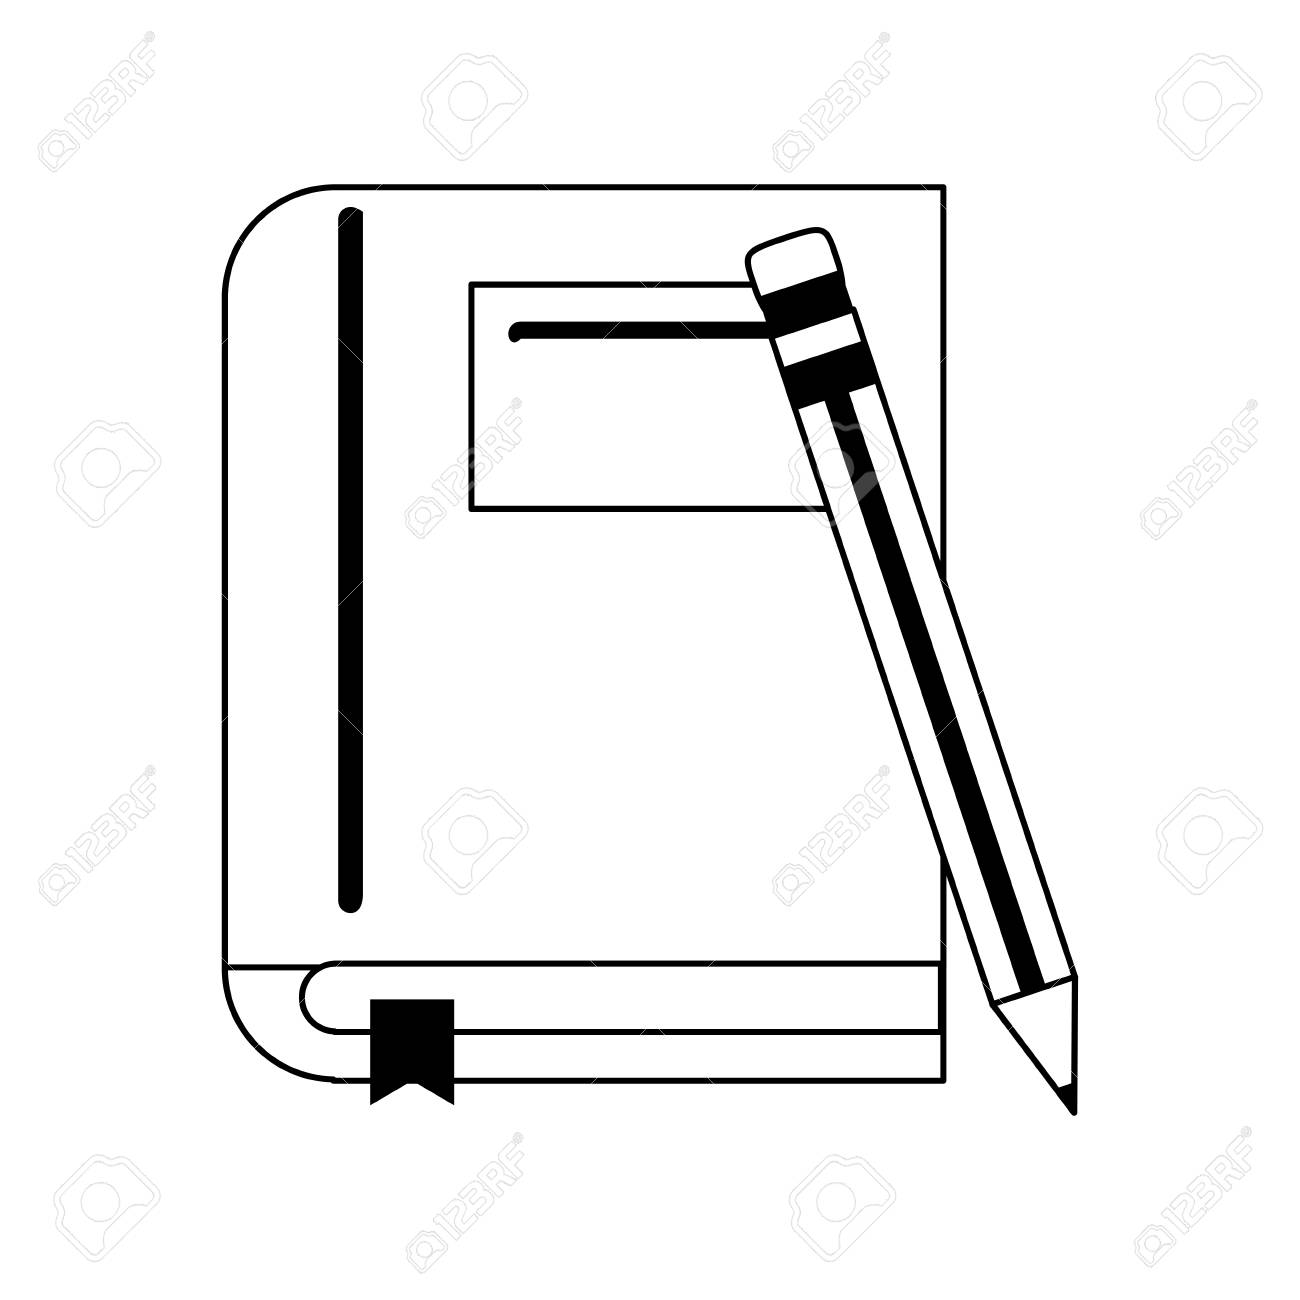 hight resolution of book with pencil icon image vector illustration design black and white stock vector 81273014